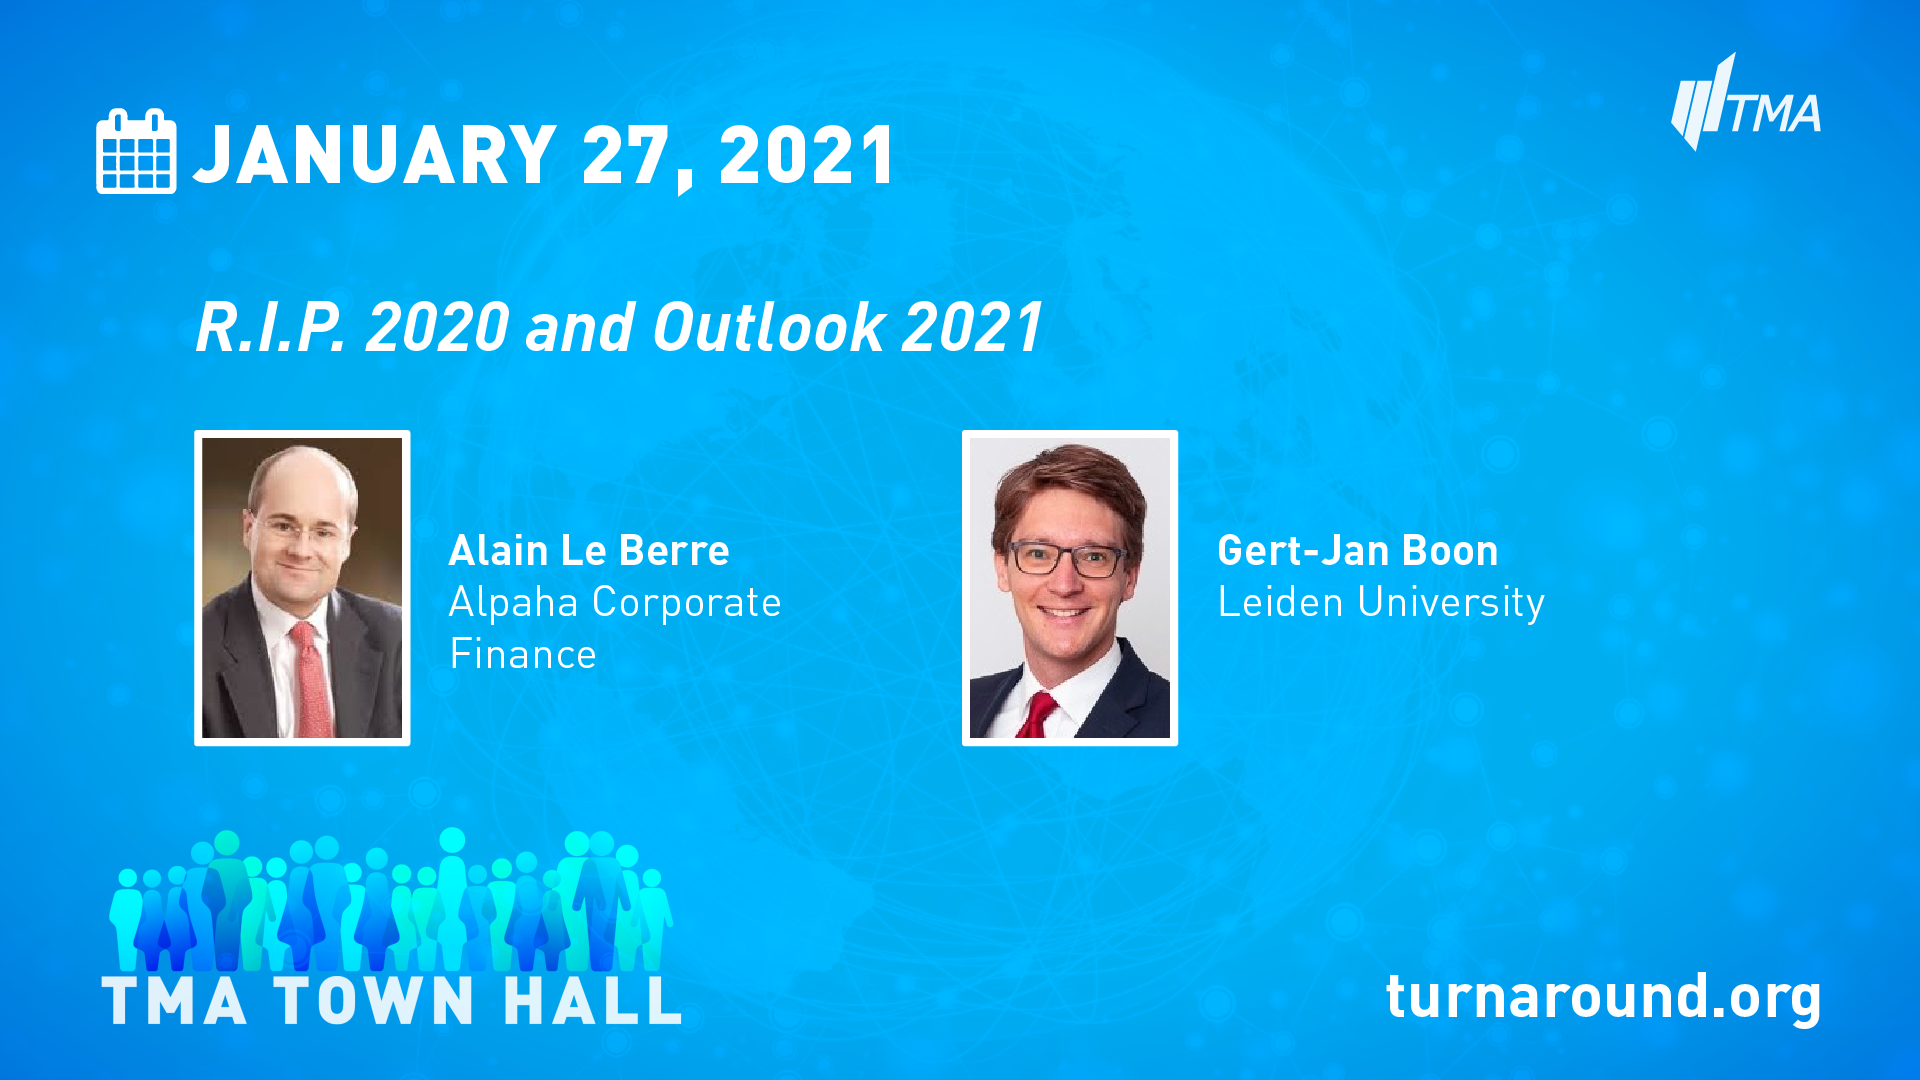 TMA Town Hall for January 27, 2021